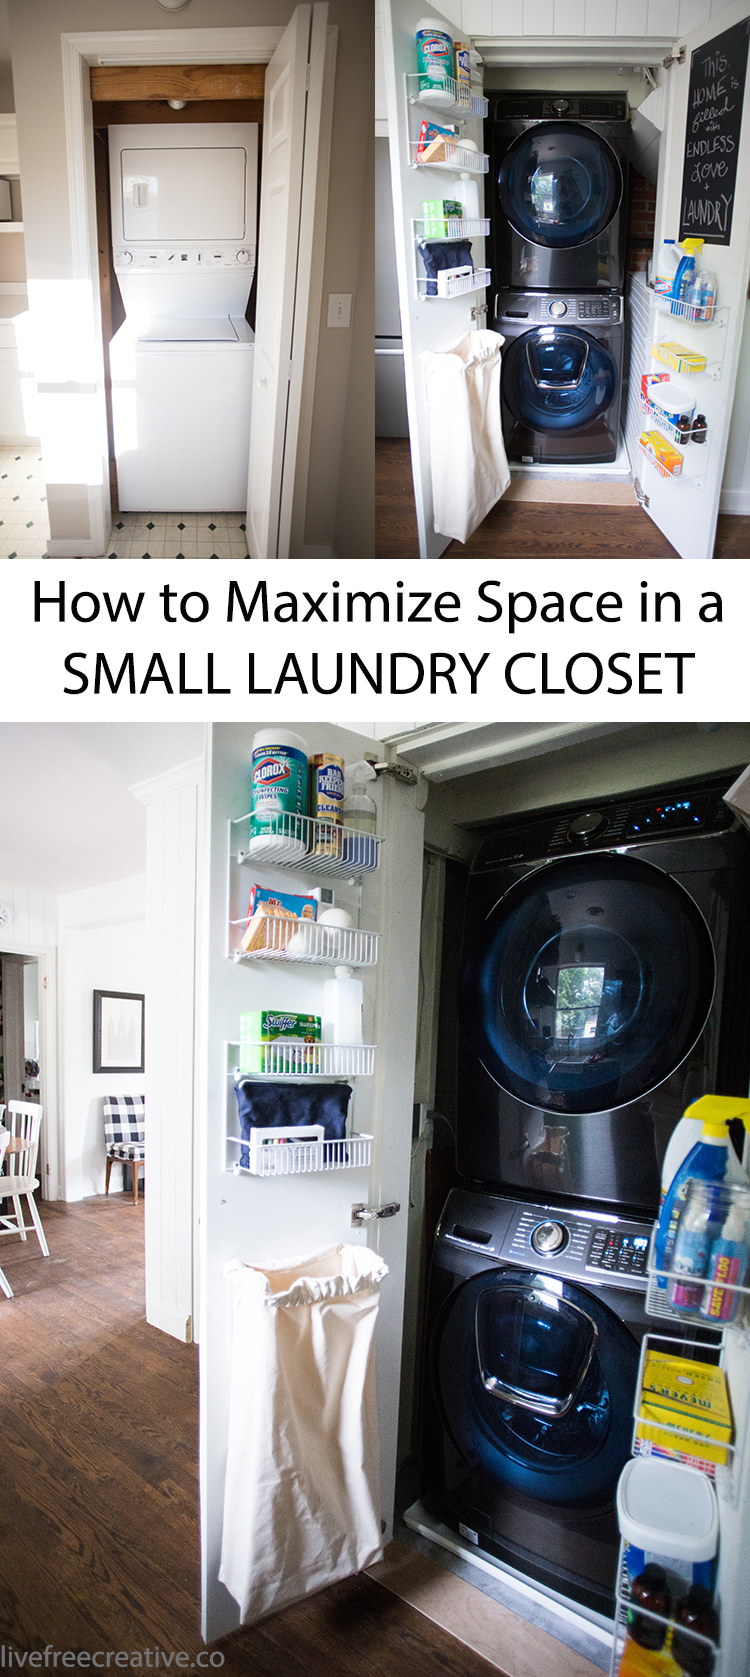 Maximize Space In A Small Laundry Closet Live Free